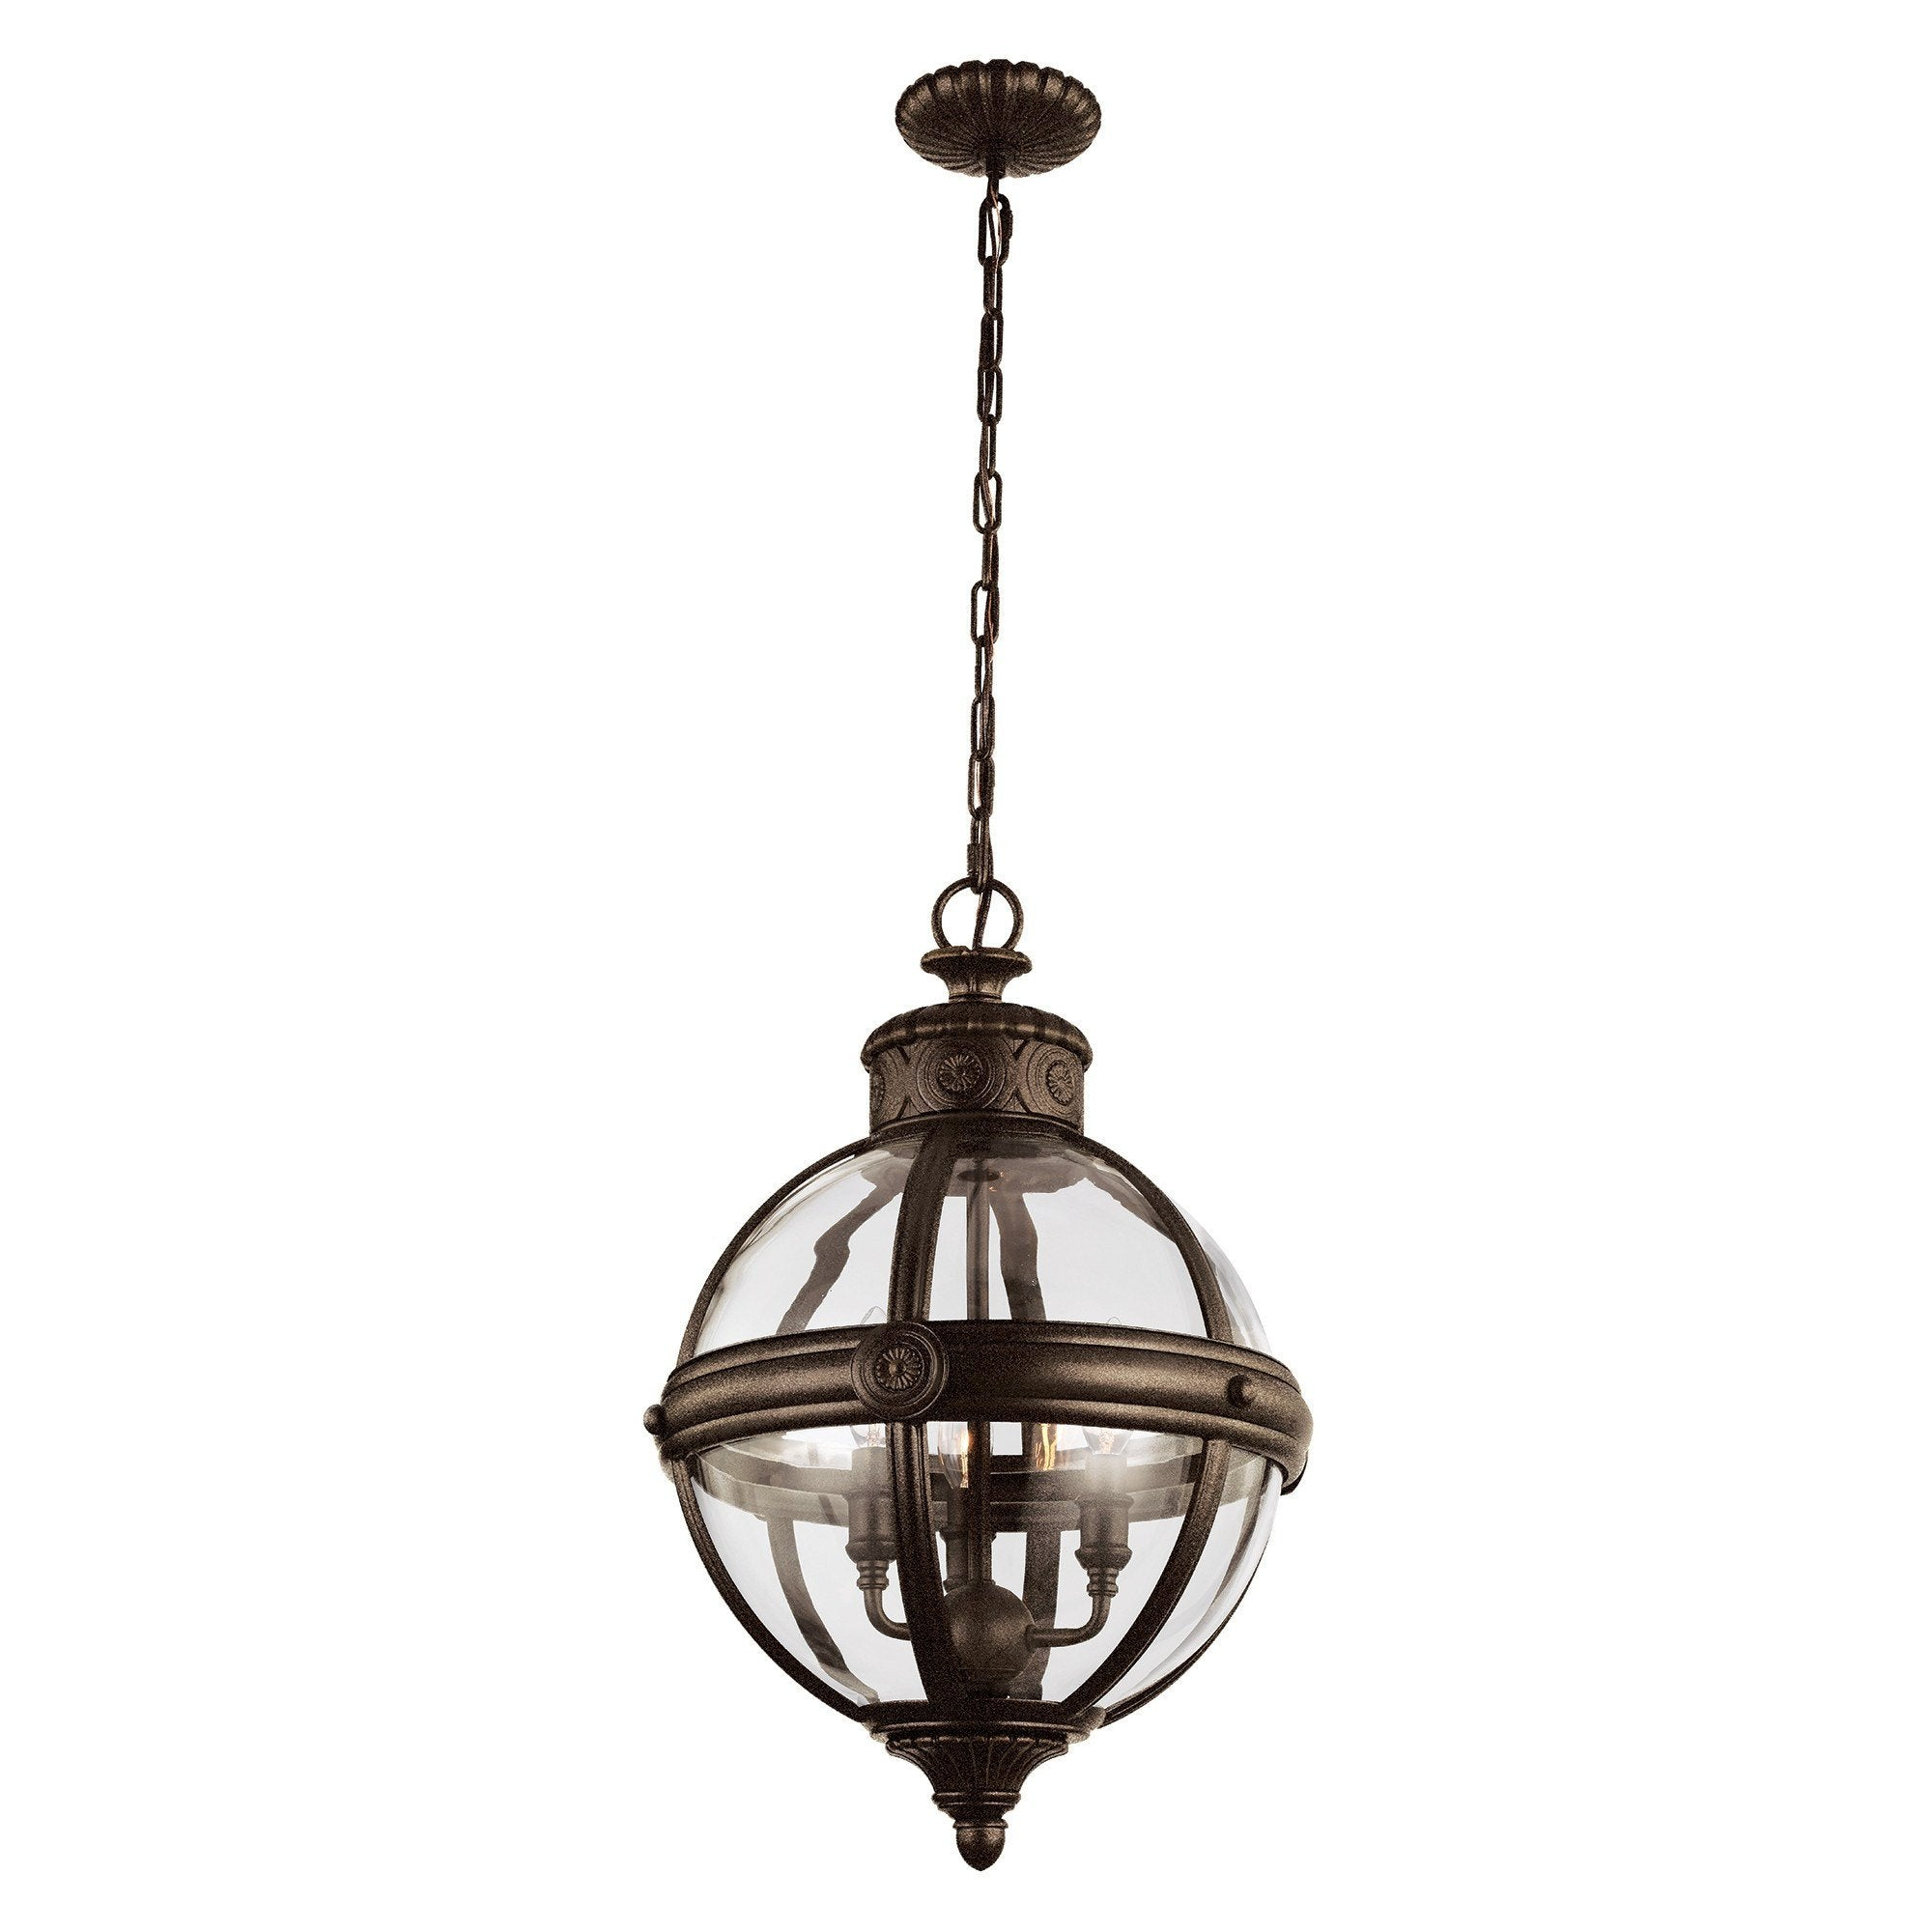 Feiss Adams 3 Light Pendant Chandelier - London Lighting - 1